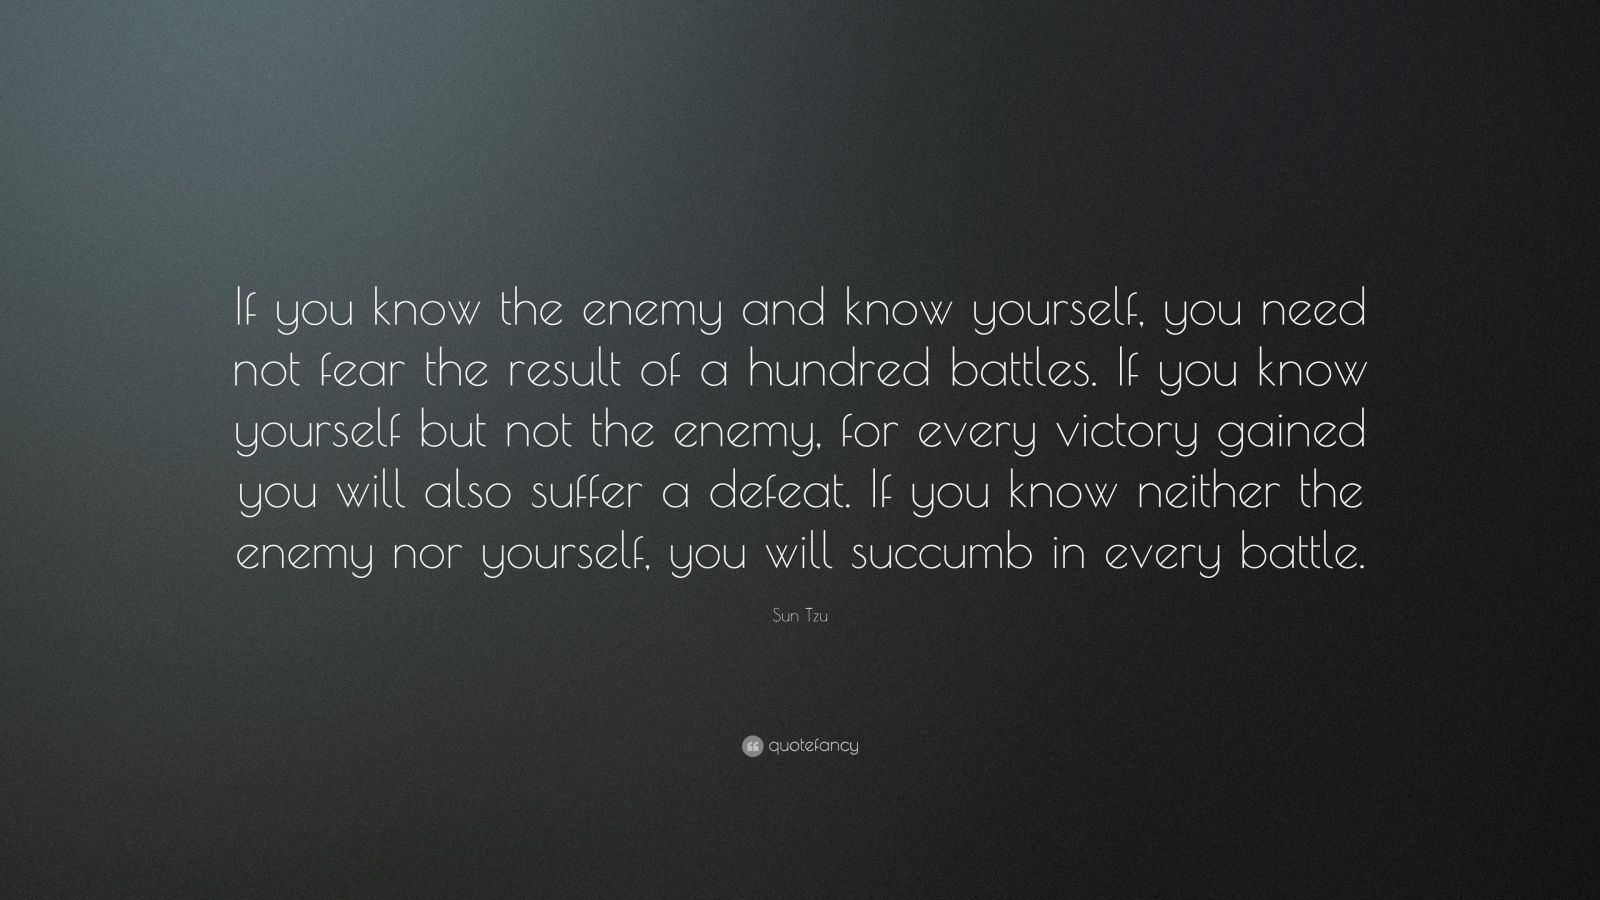 Hd wallpaper you need - Hd Wallpaper You Need Sun Tzu Quote If You Know The Enemy And Know Yourself